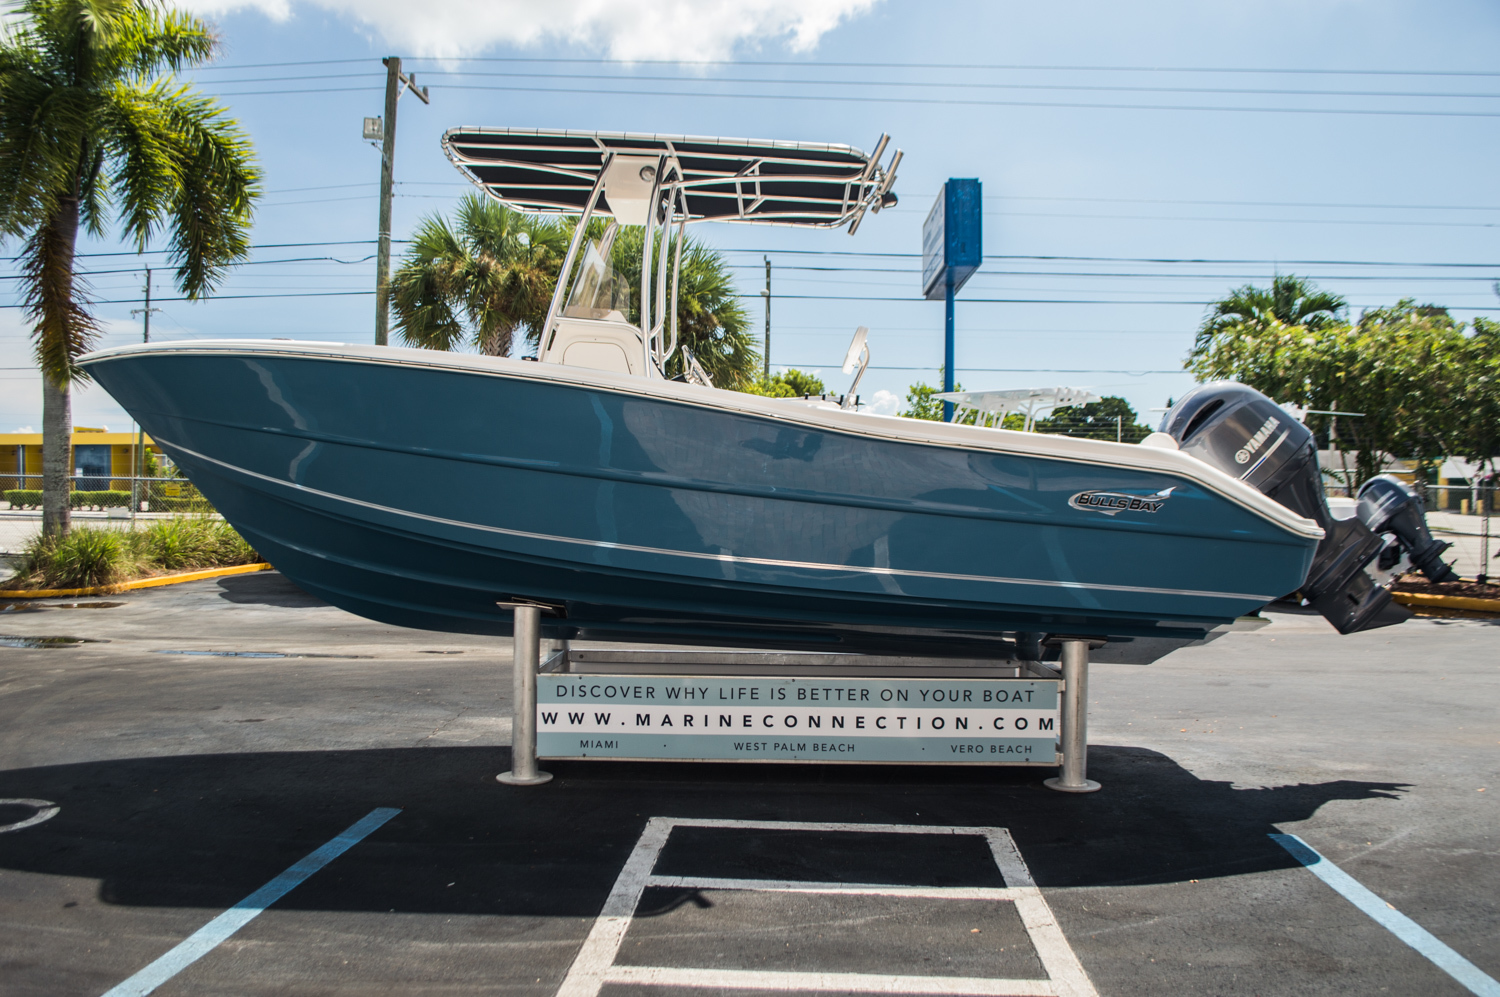 Thumbnail 4 for New 2016 Bulls Bay 230 CC Center Console boat for sale in West Palm Beach, FL